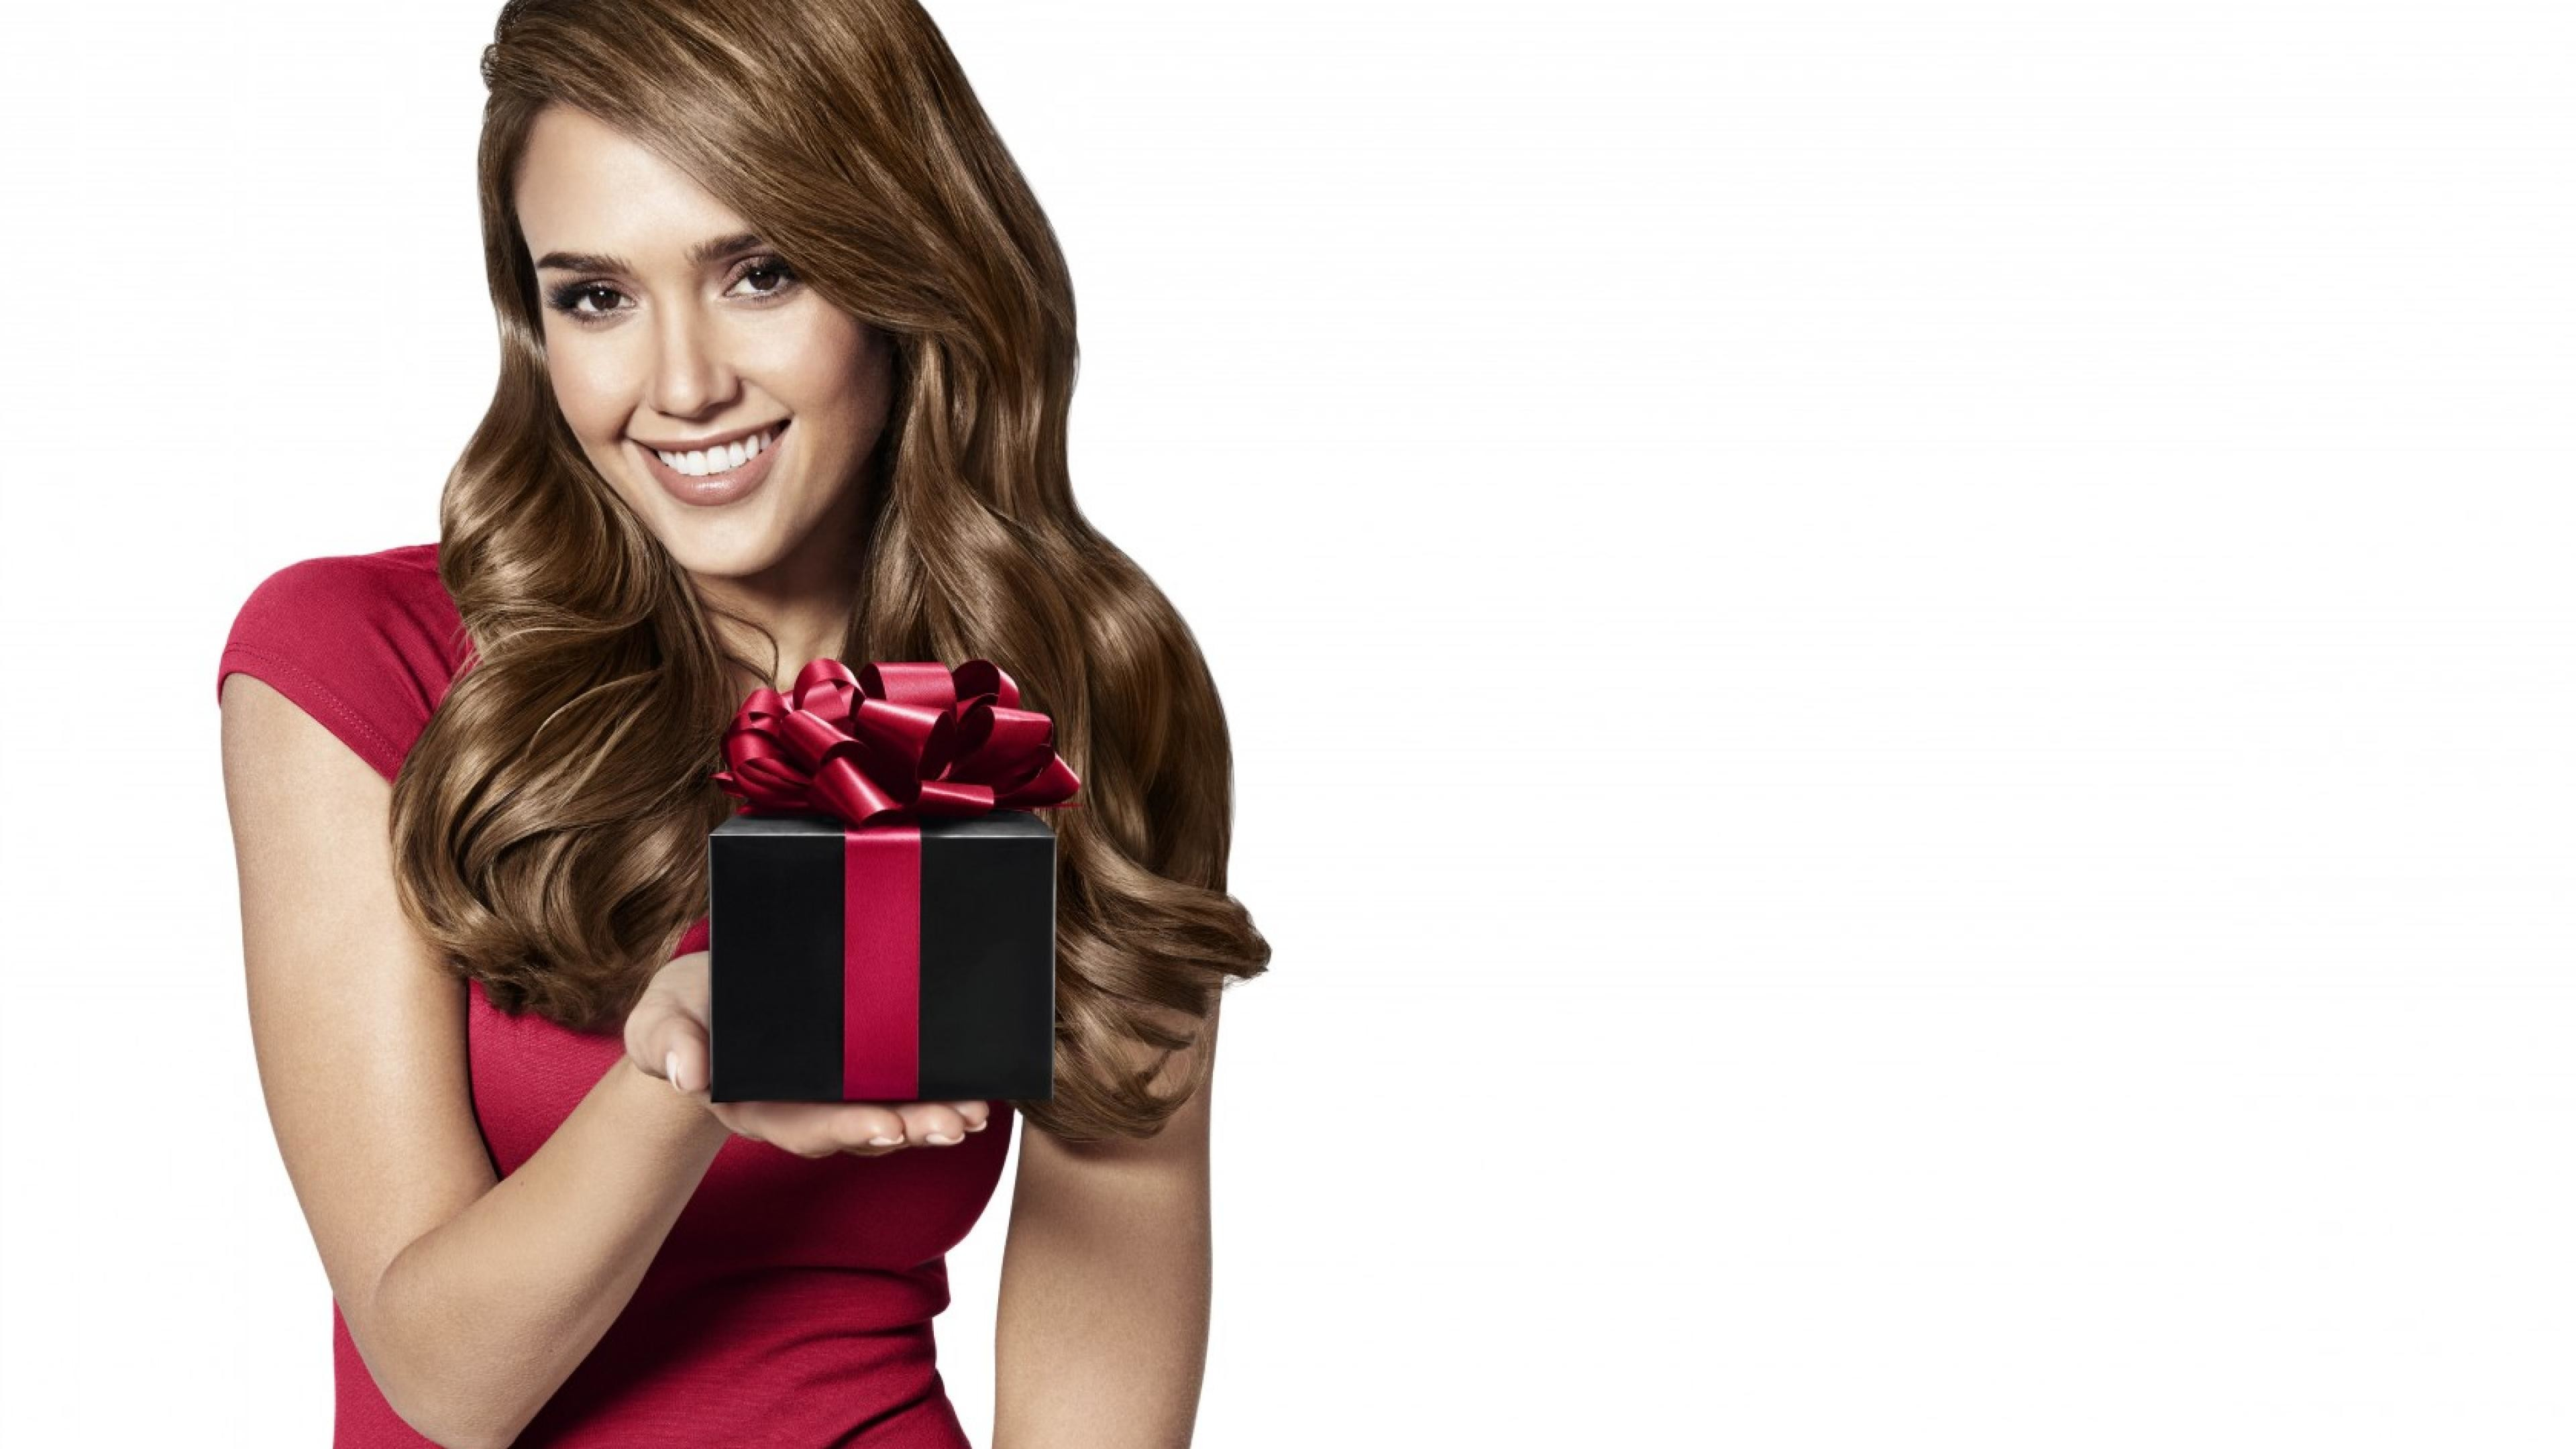 3840x2160 Jessica Alba Beautiful Smile HD Wallpaper